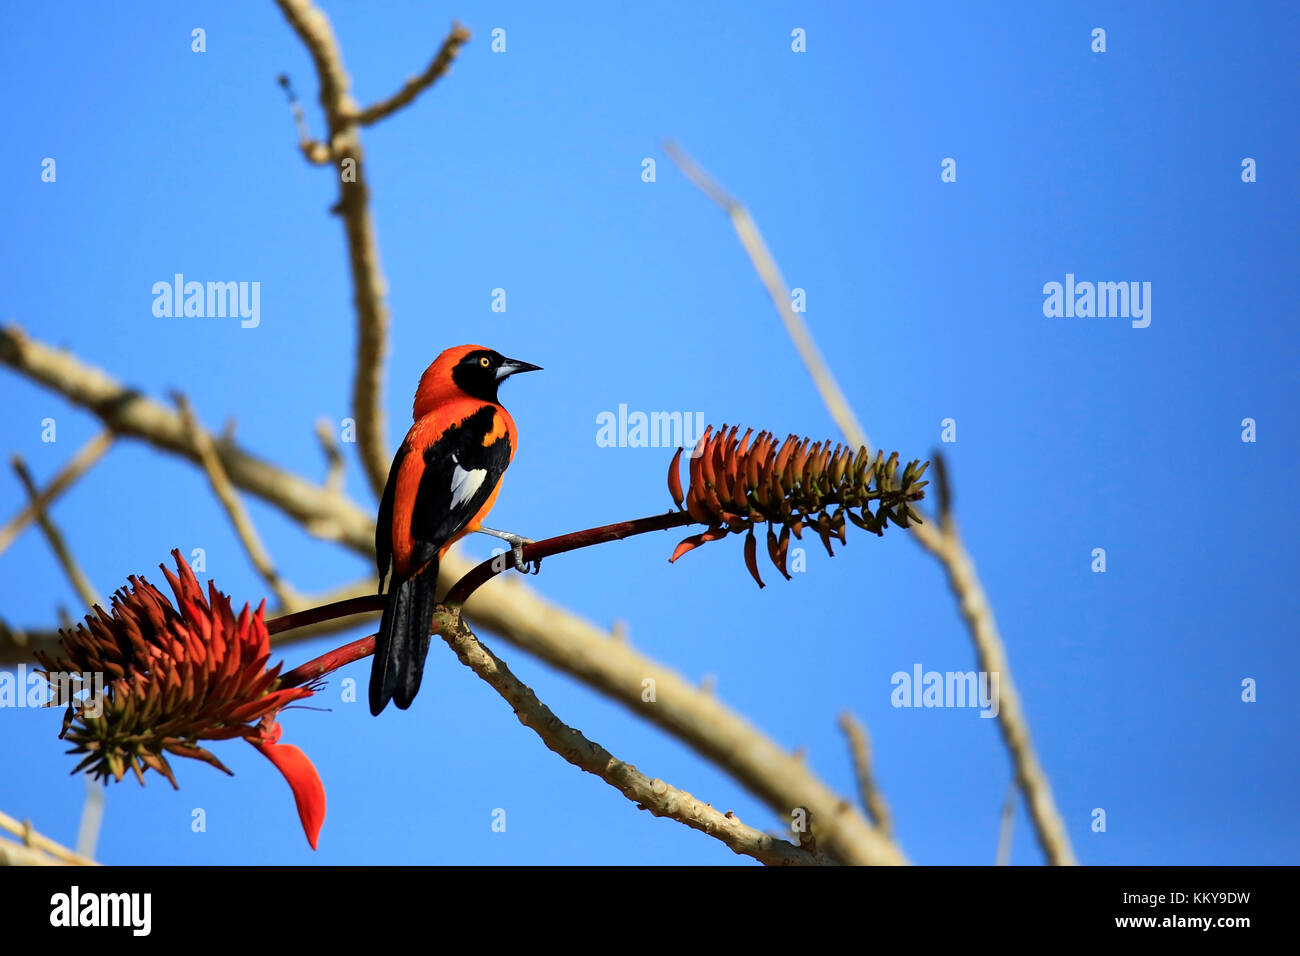 Orange-backed Troupial on a Branch. Pantanal, Brazil - Stock Image